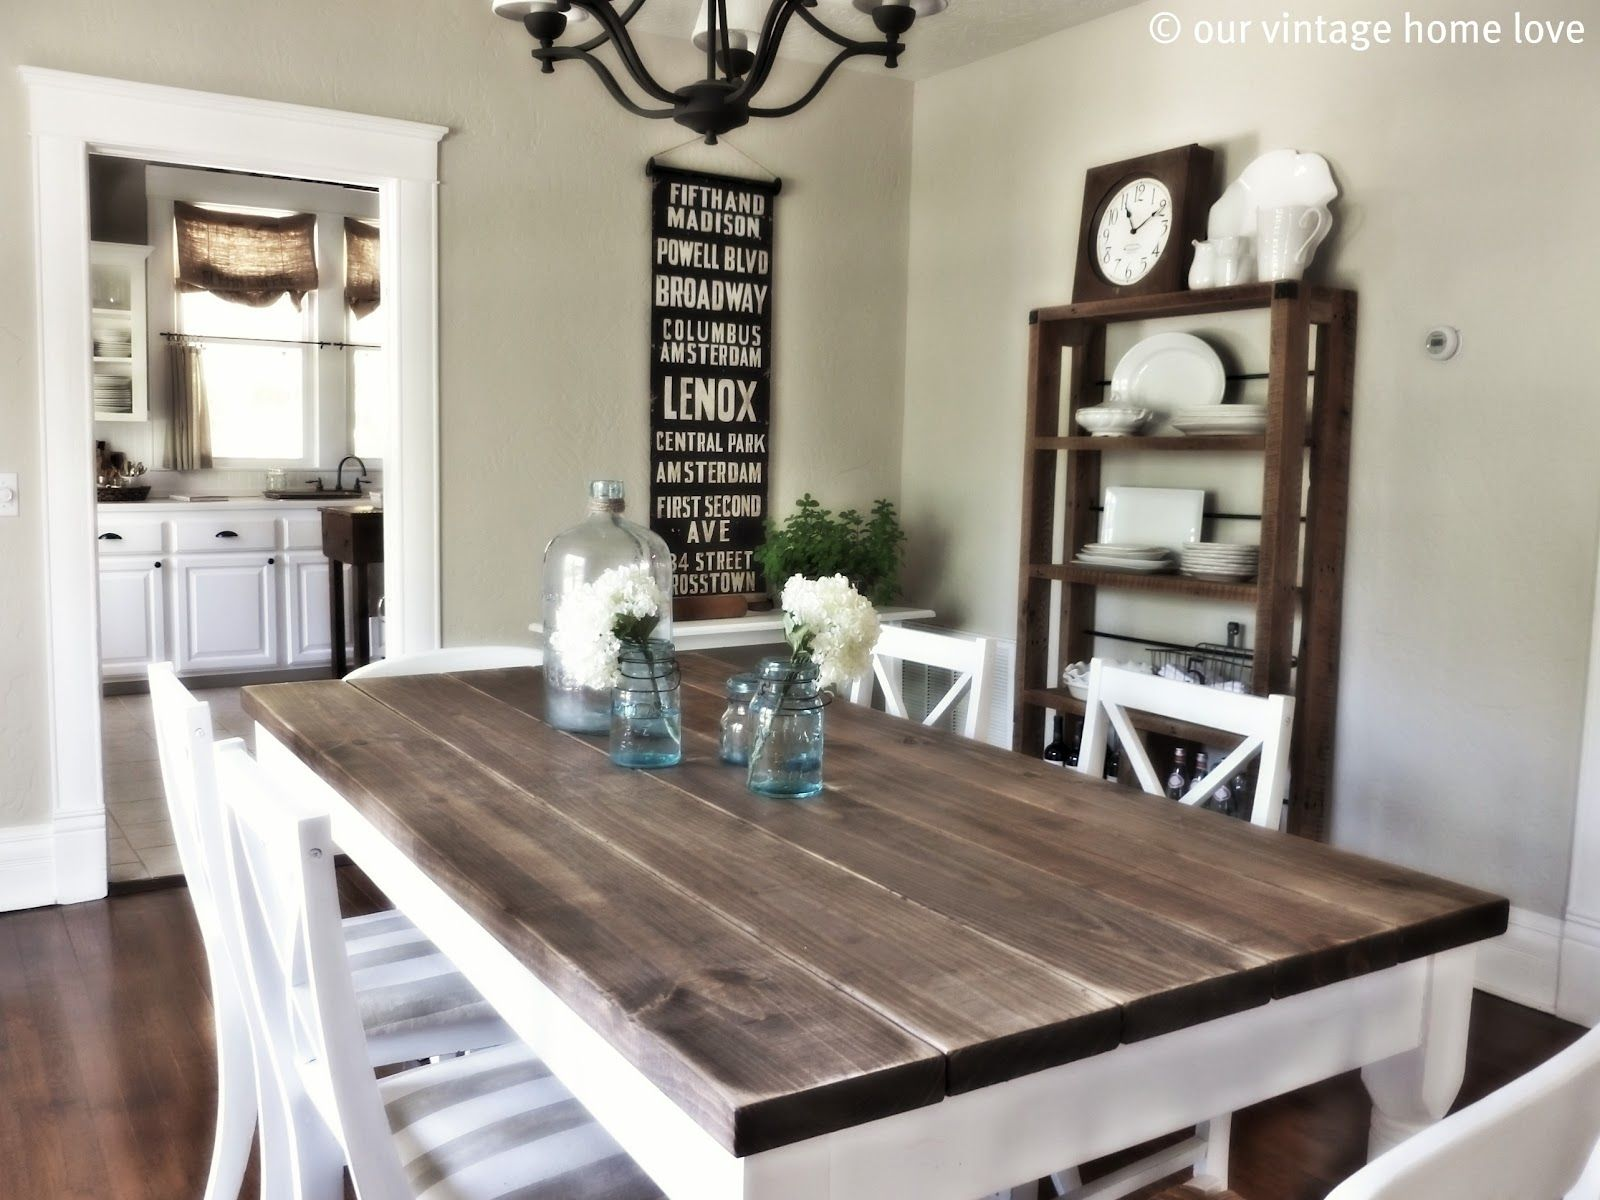 DIY Kitchen Table Top   Our Vintage Home Love: Dining Room Table Part 43